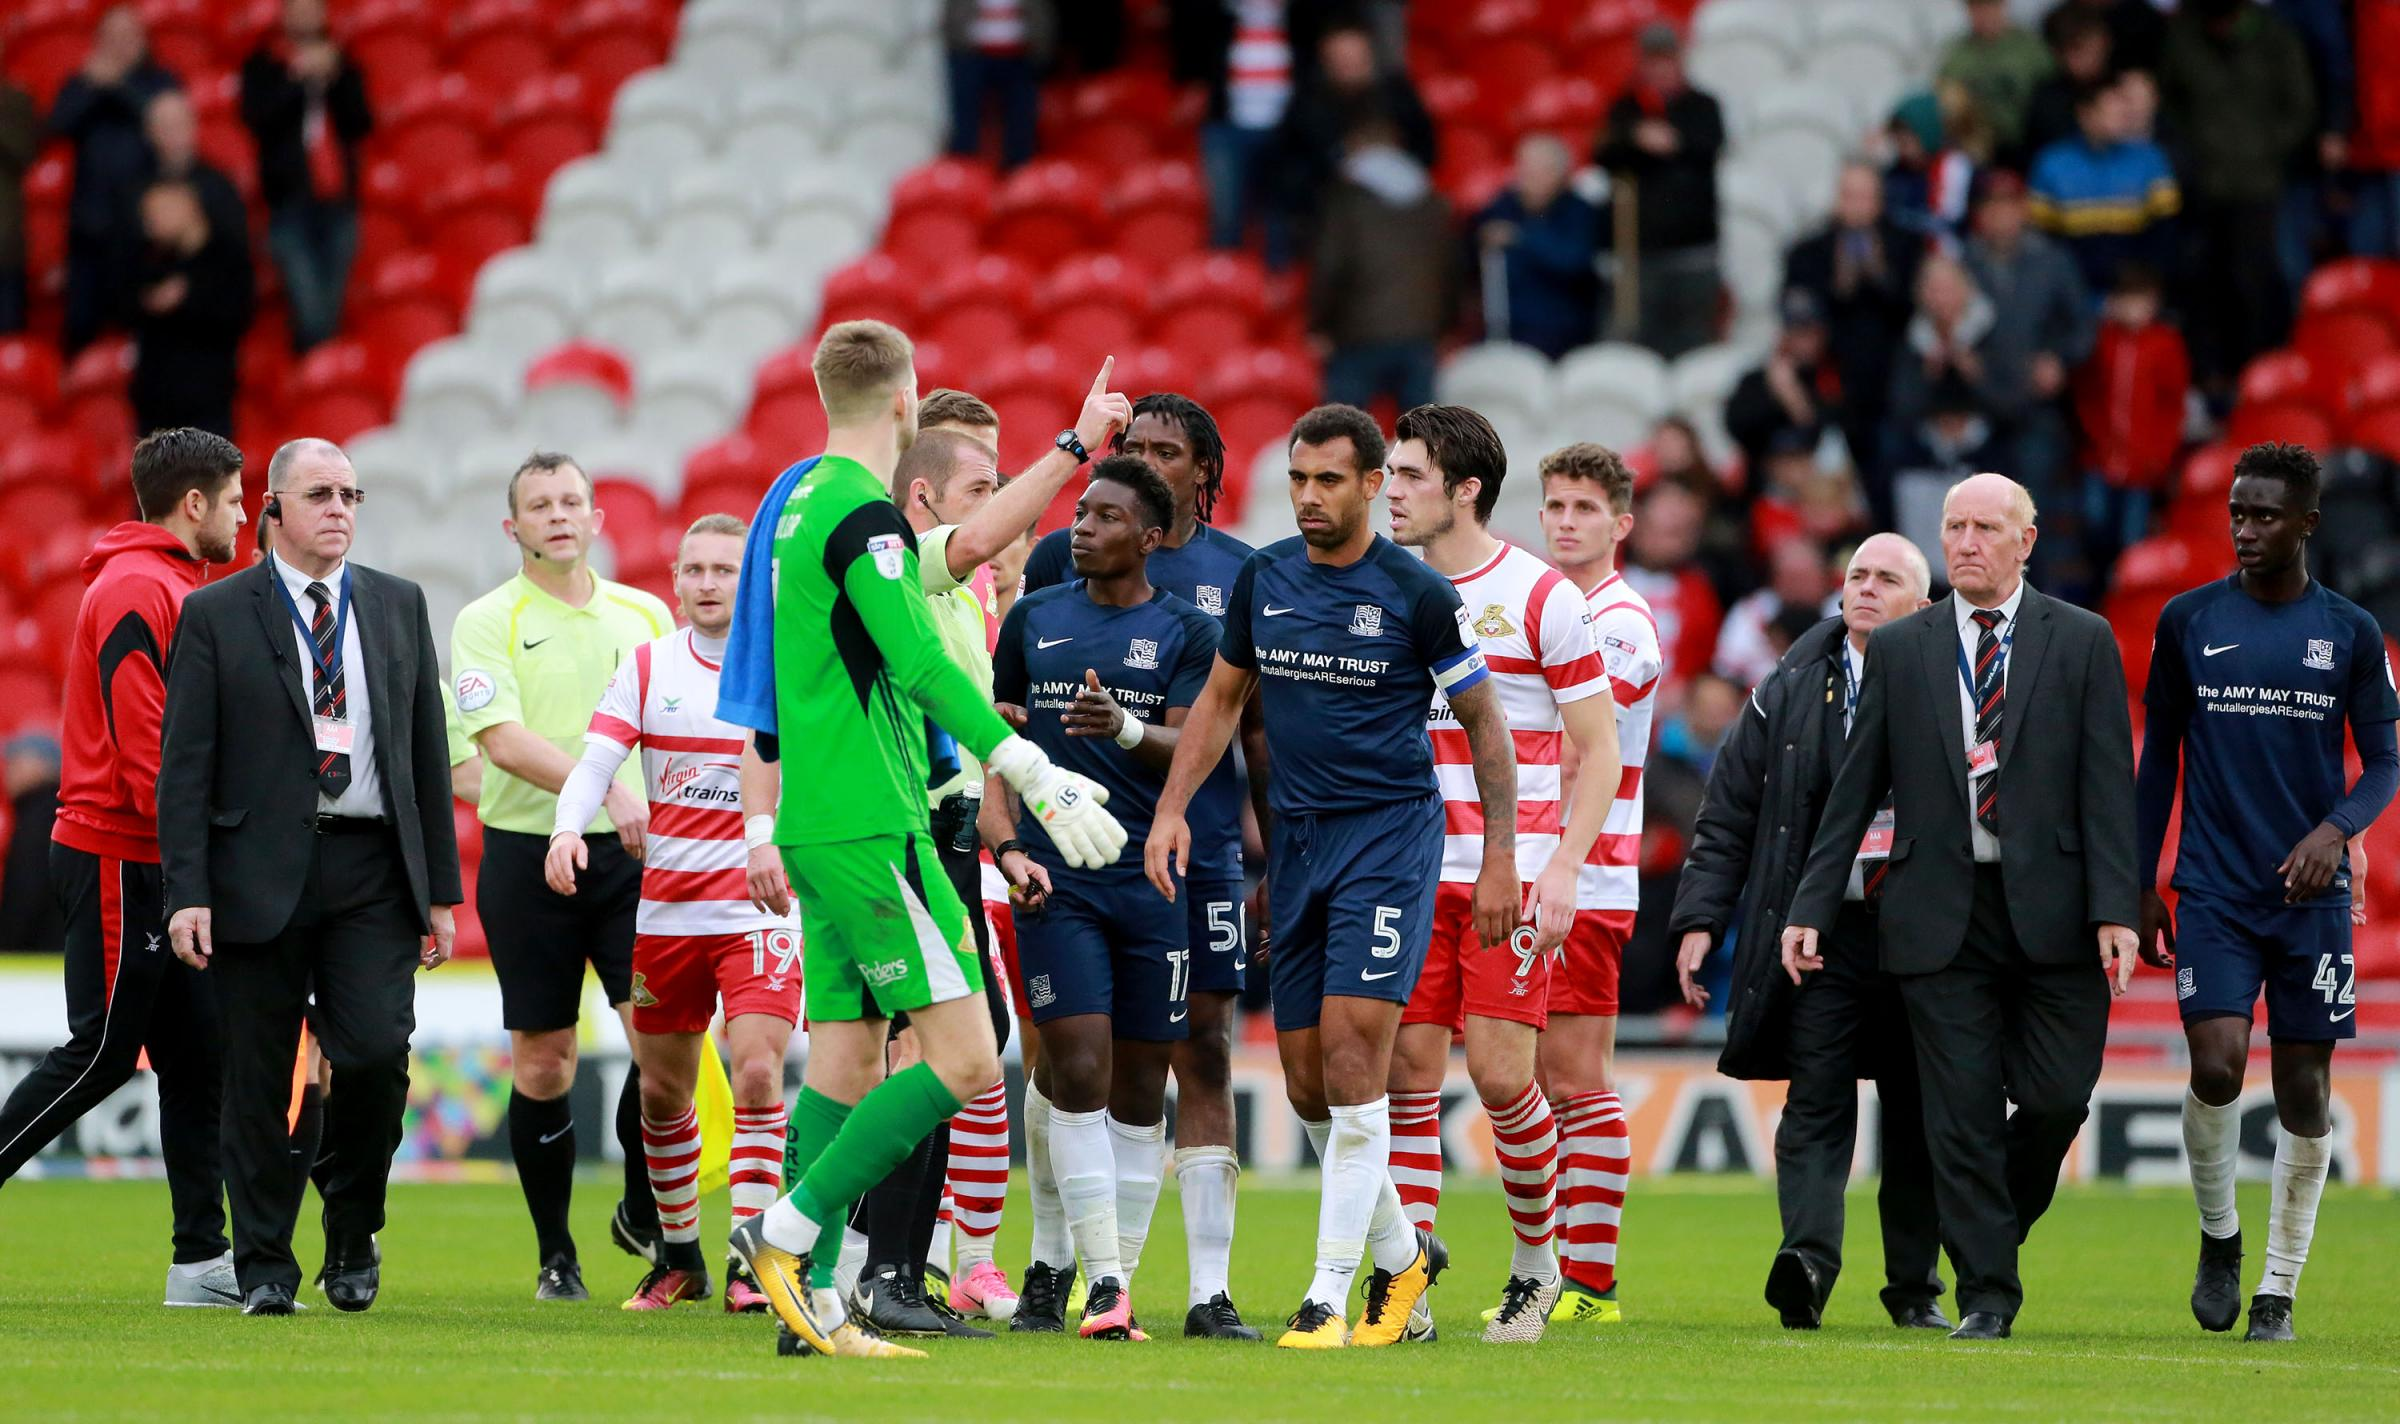 Sent off - Southend United captain Anton Ferdinand